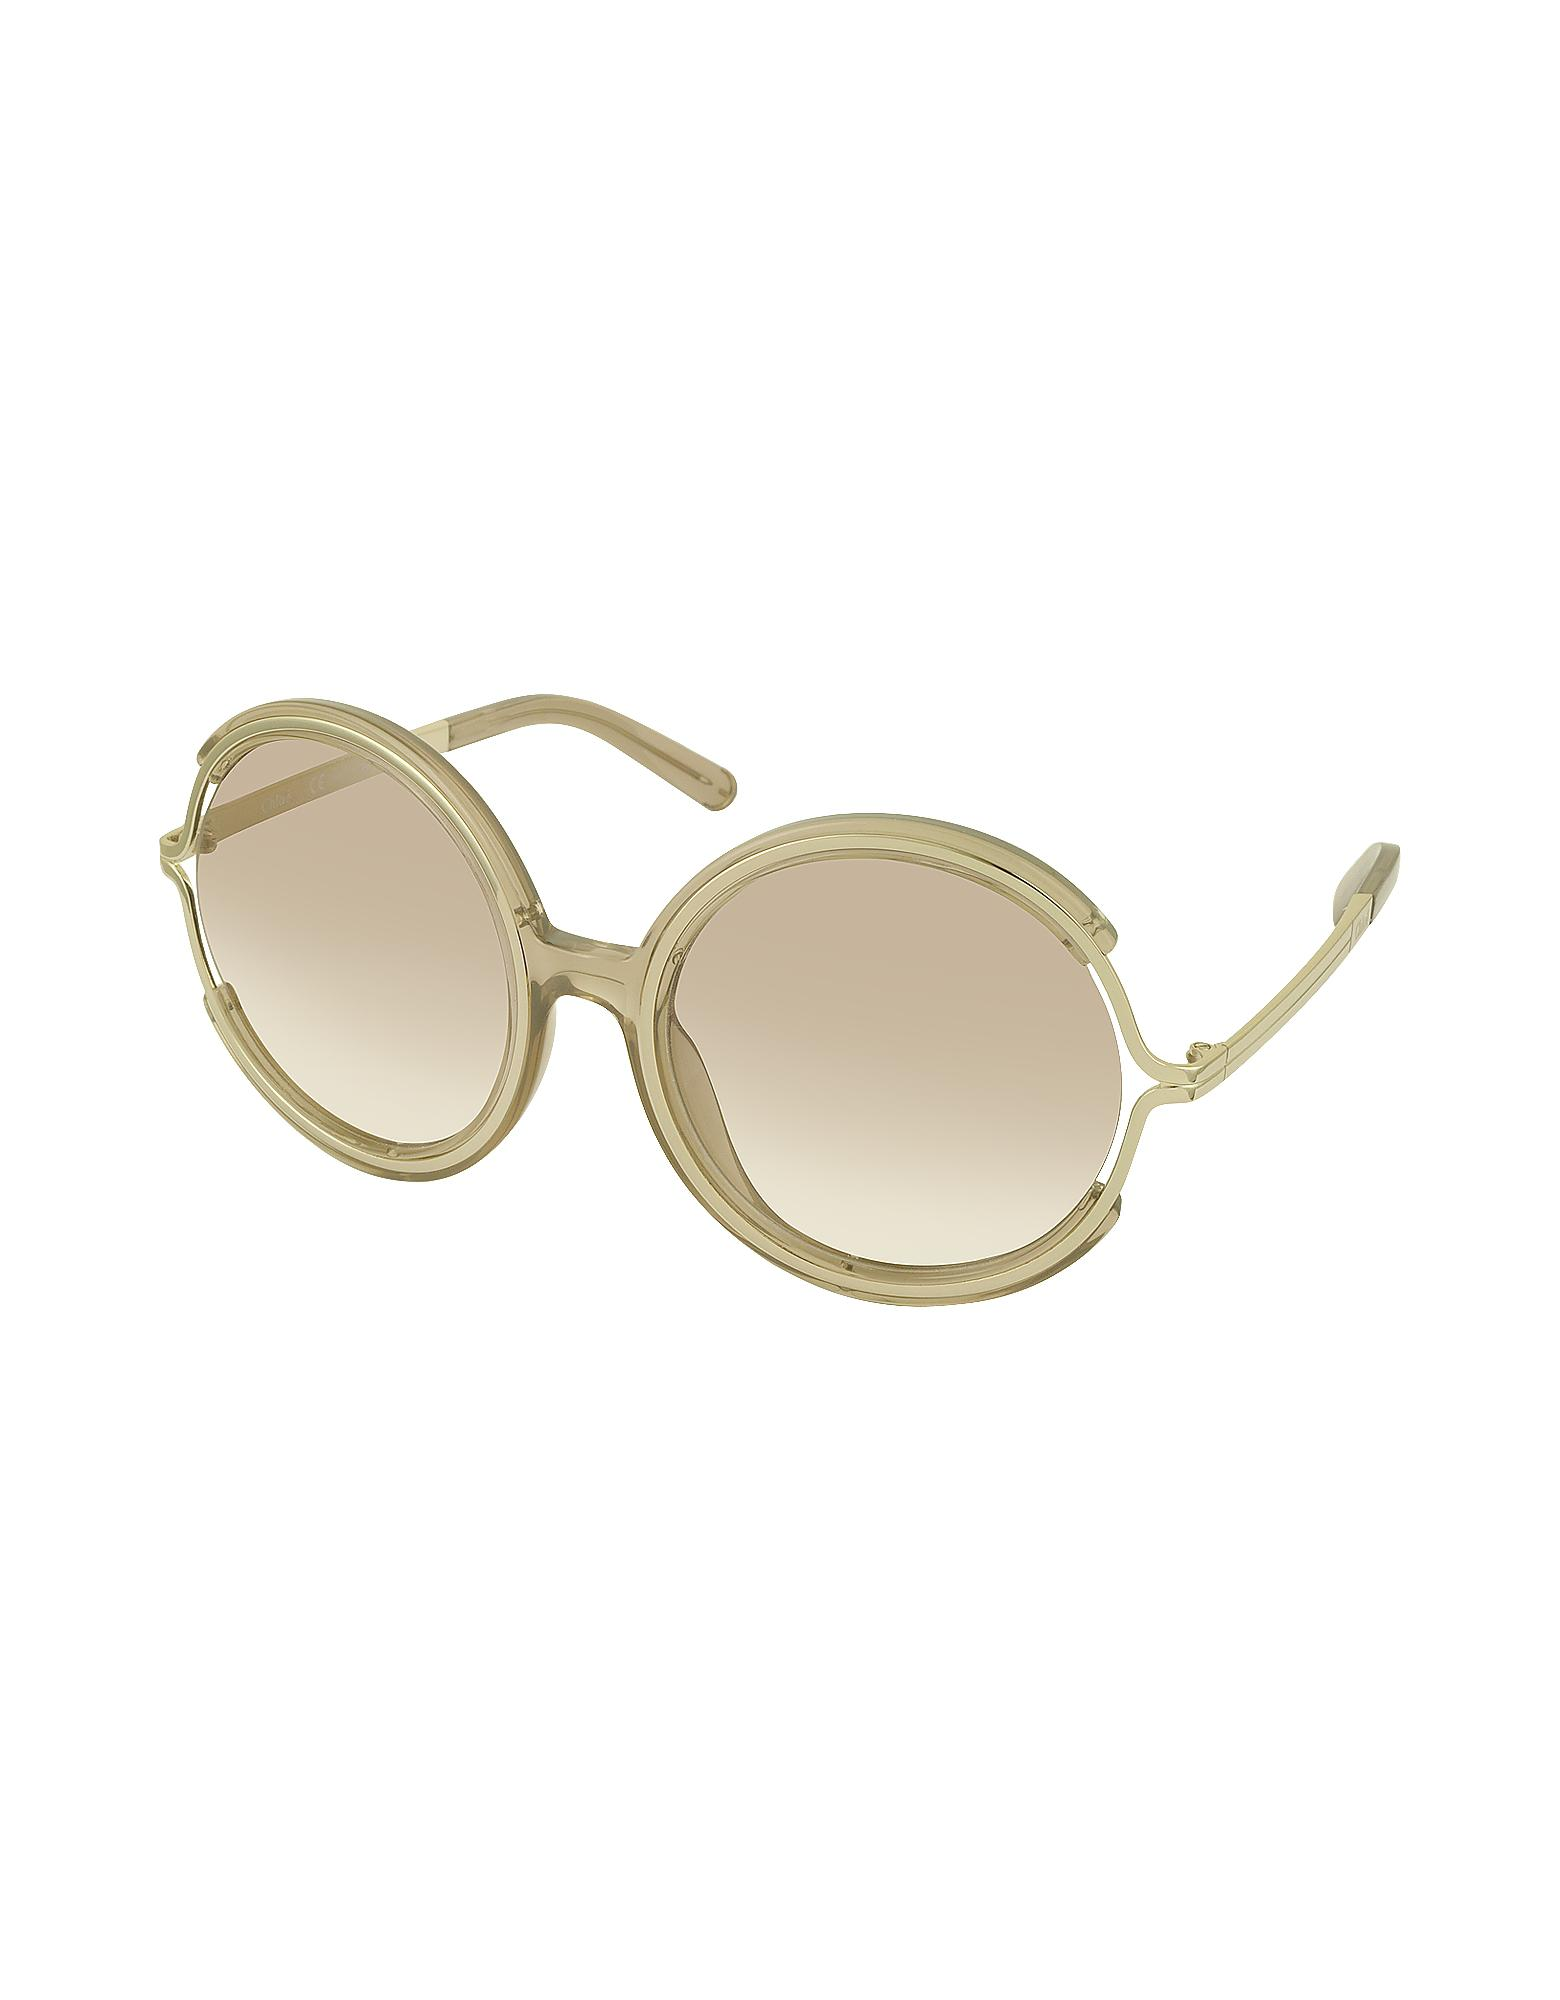 394c40f5bdf Chloé Jayme Ce 708s 272 Light Brown Acetate And Gold Metal Round ...